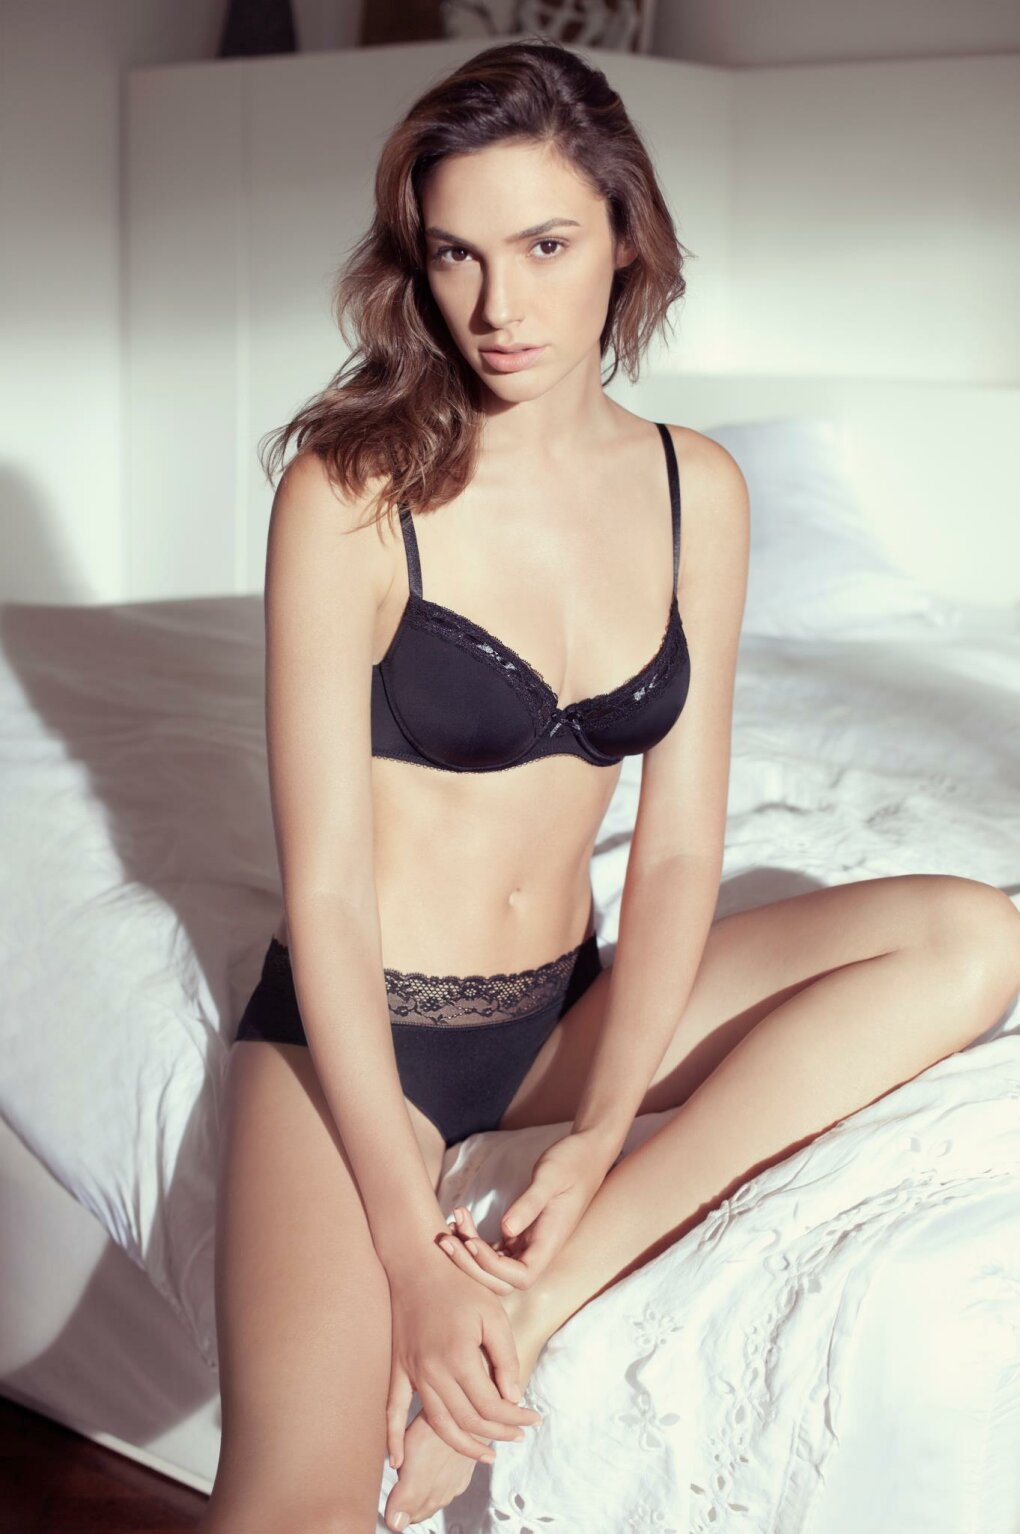 gal gadot ready for bed